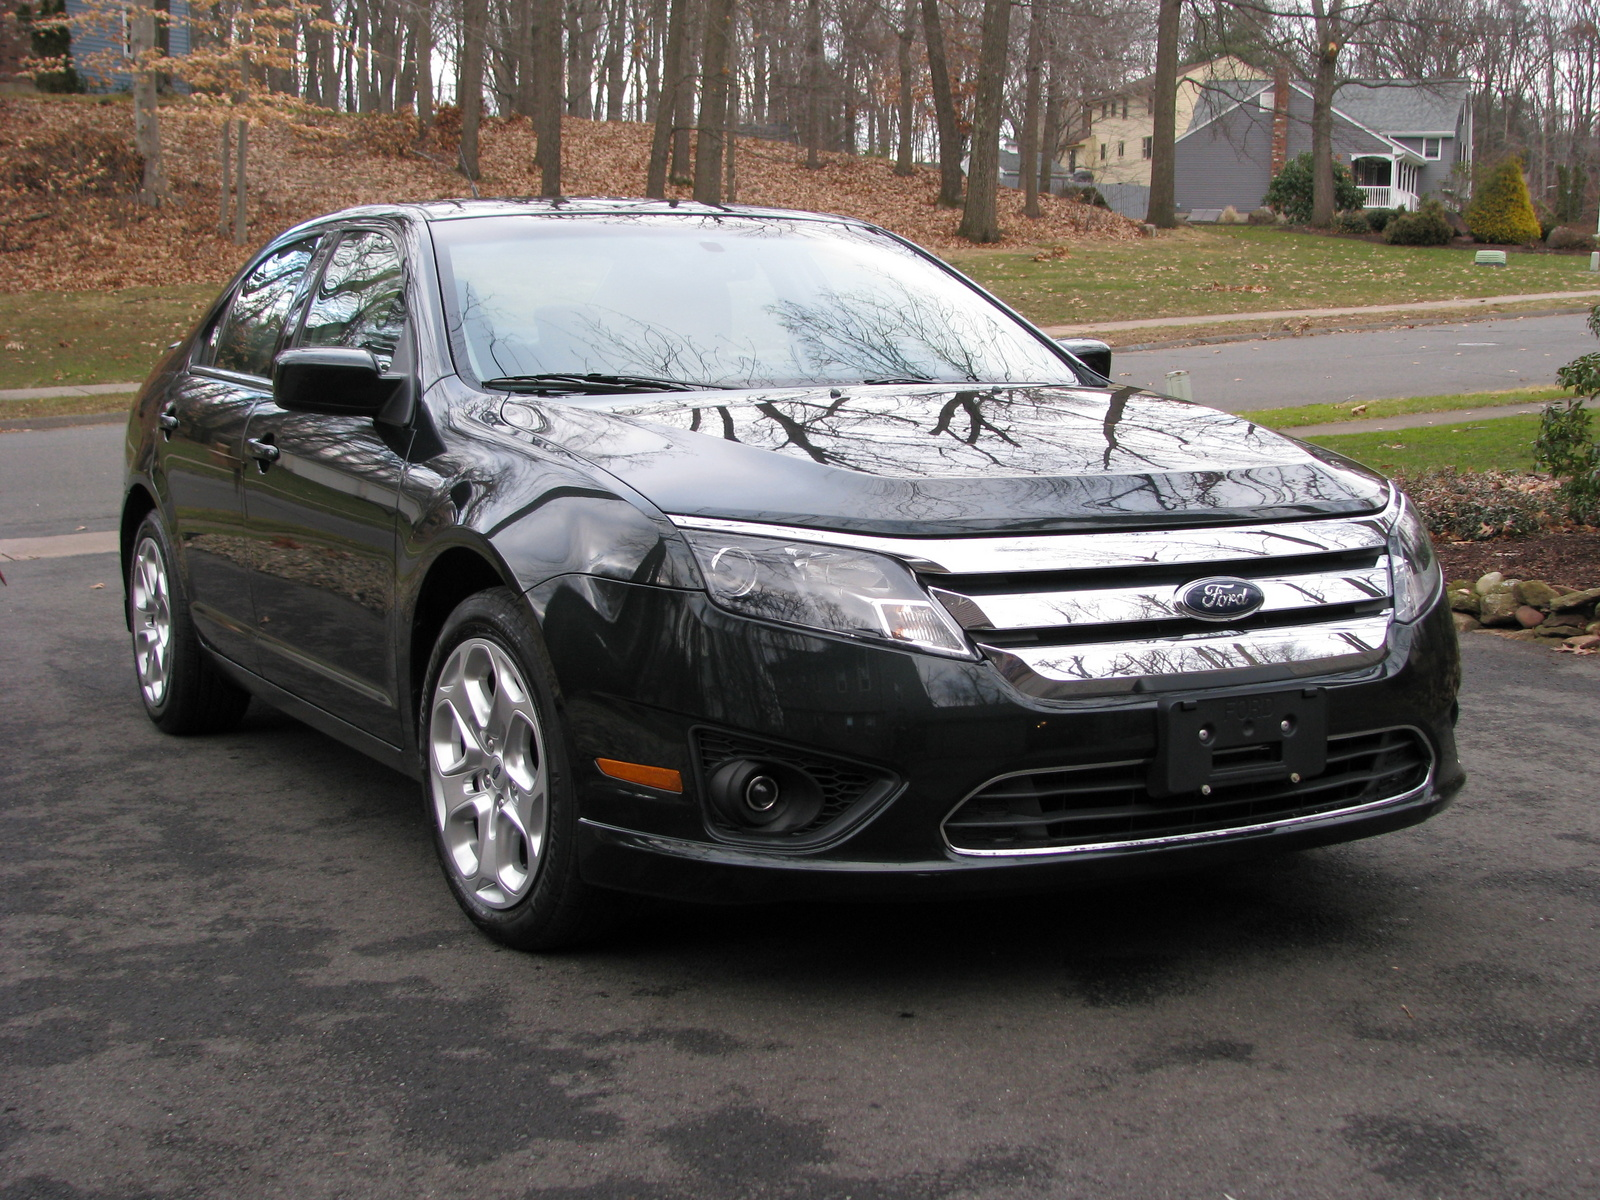 Ford Fusion Se Pic